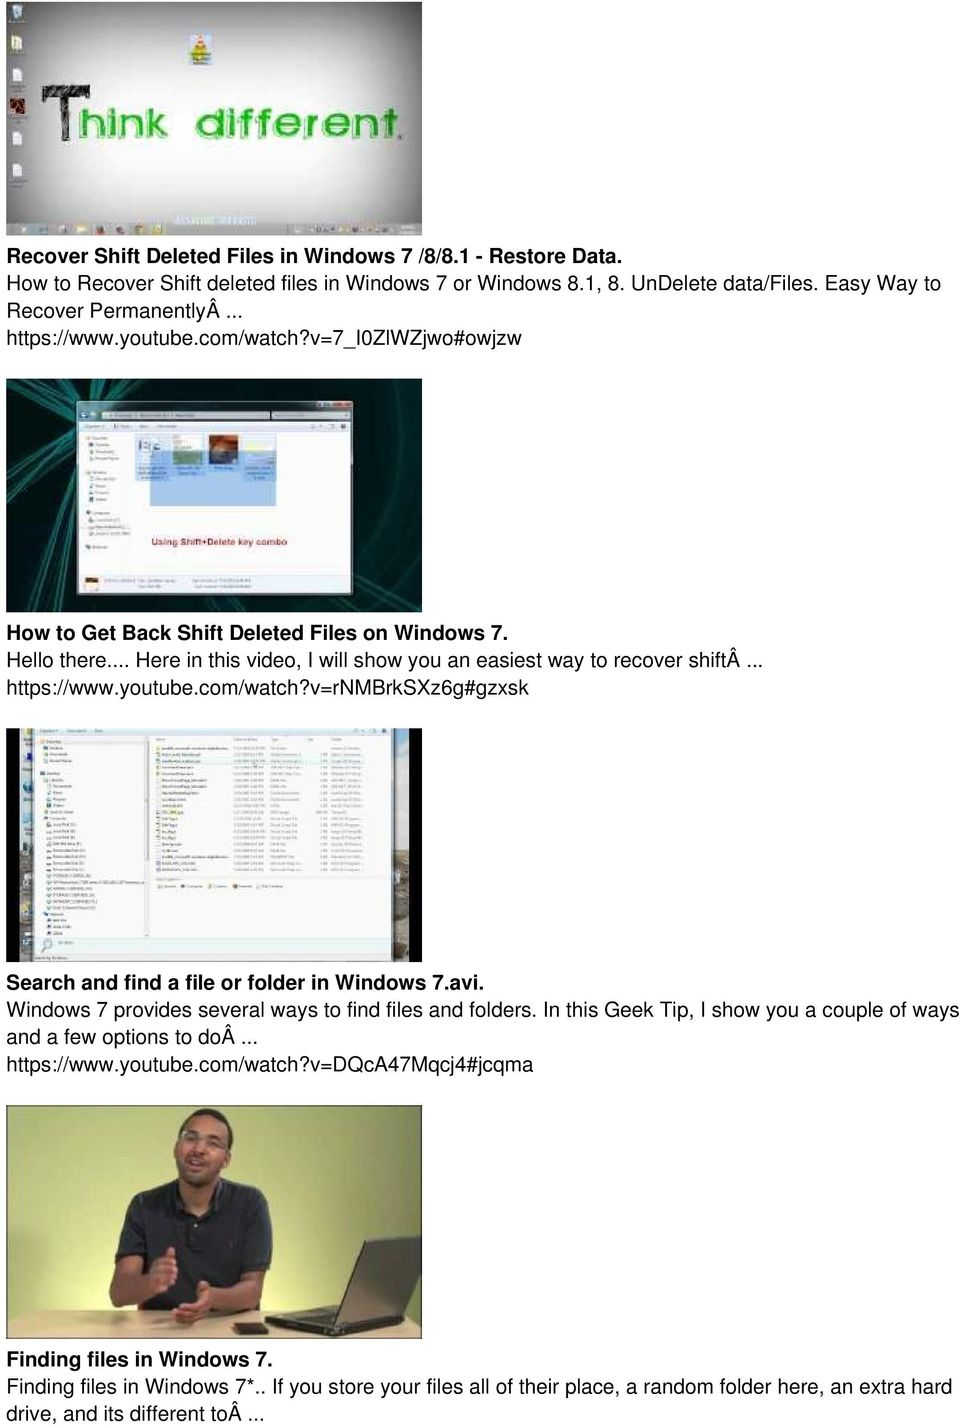 avi. Windows 7 provides several ways to find files and folders. In this Geek Tip, I show you a couple of ways and a few options to doâ... https://www.youtube.com/watch?